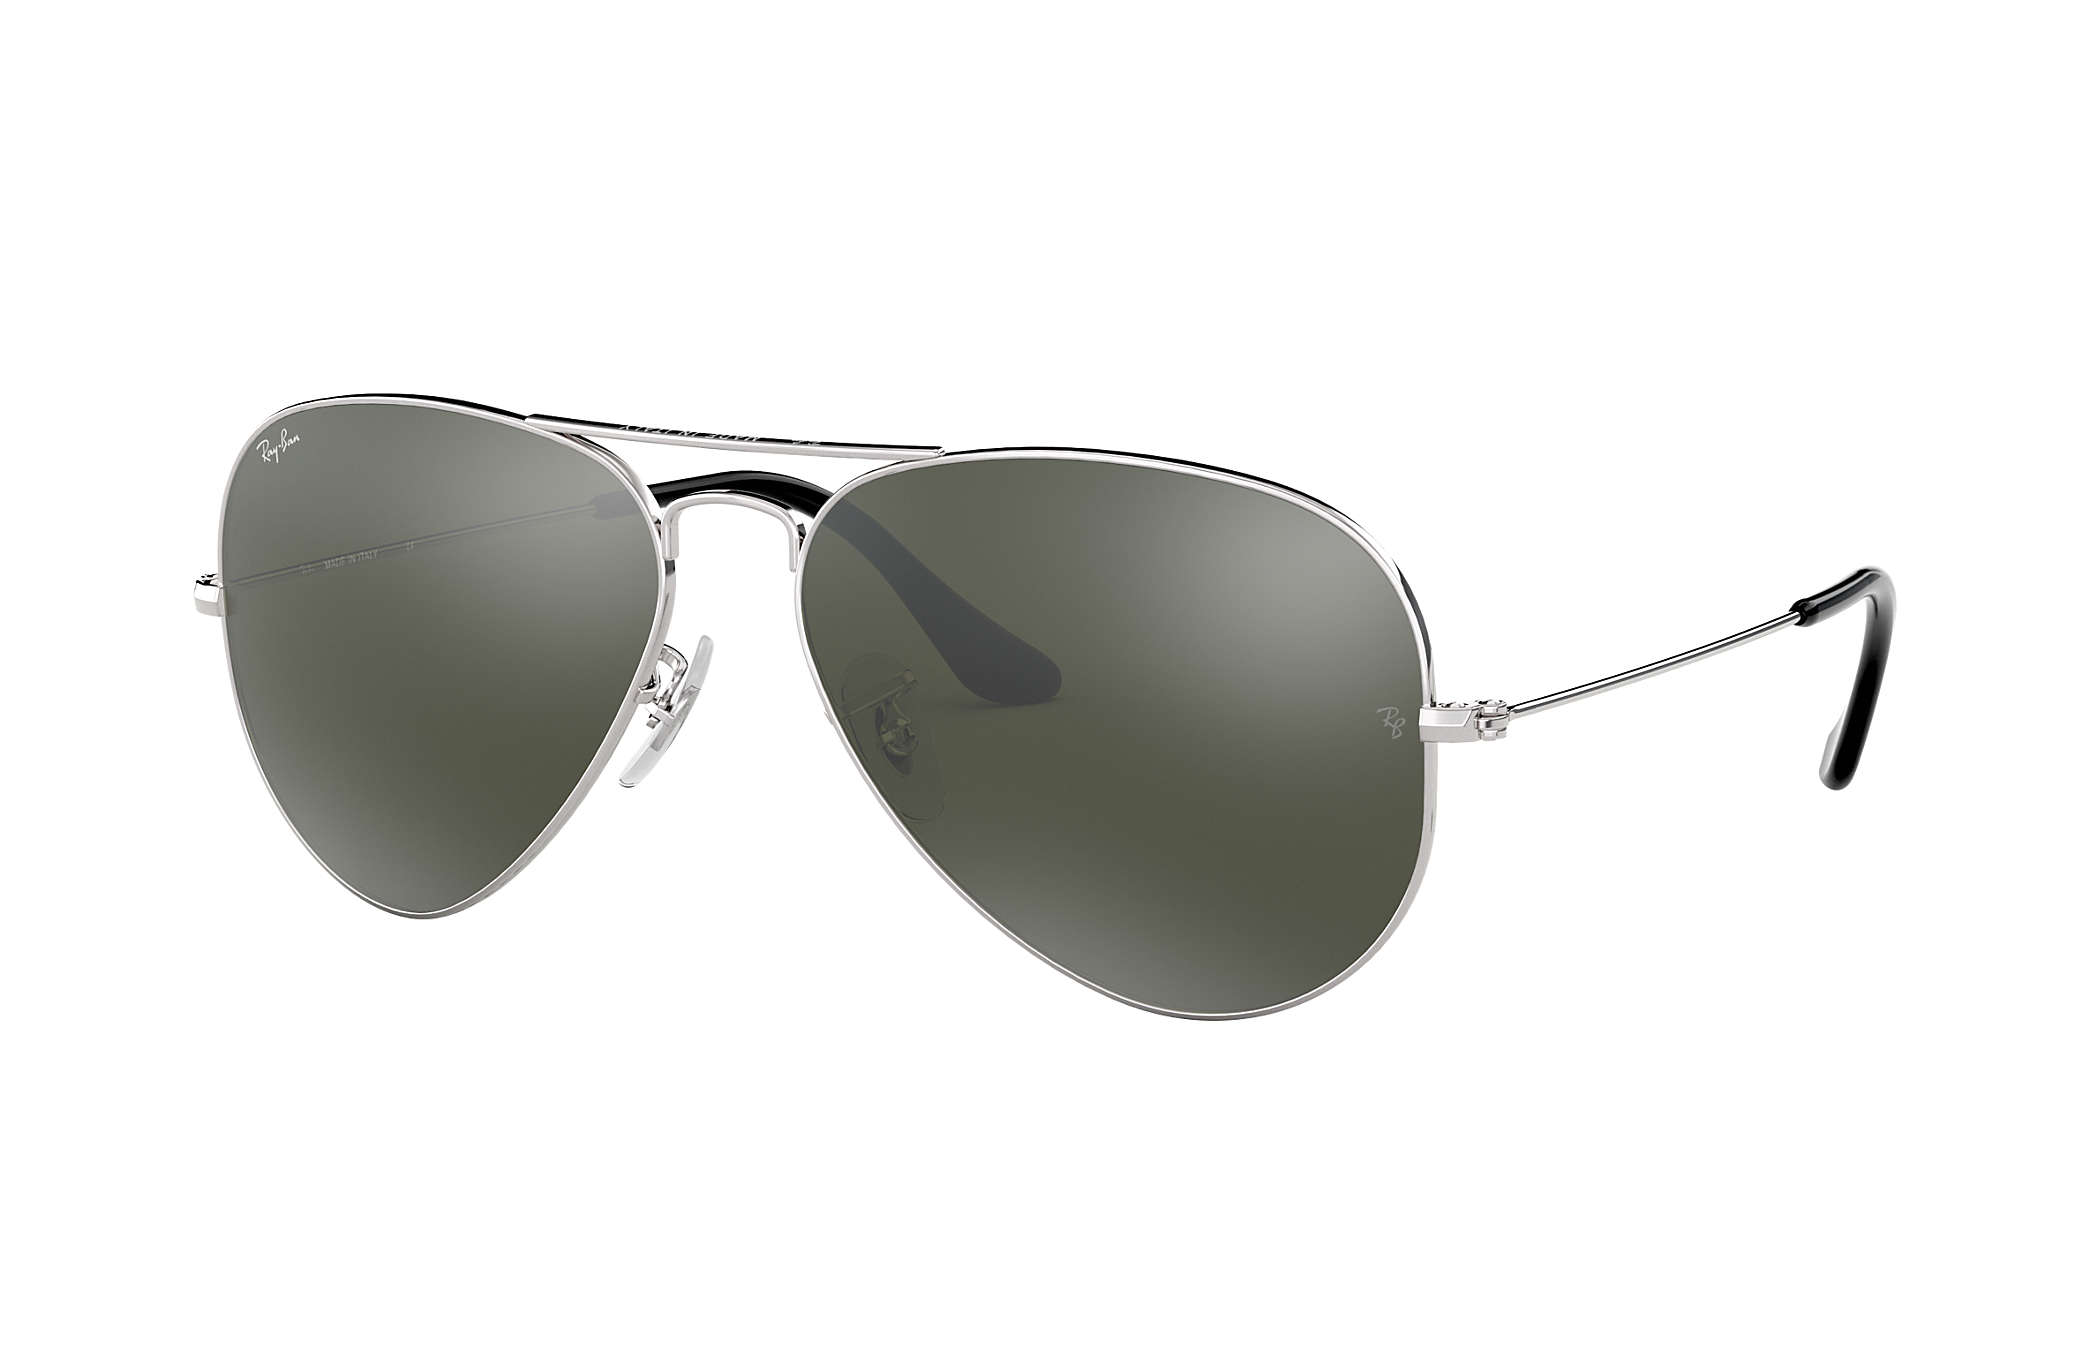 Ray ban sunglasses with price - Ray Ban 0rb3025 Aviator Mirror Silver Sun